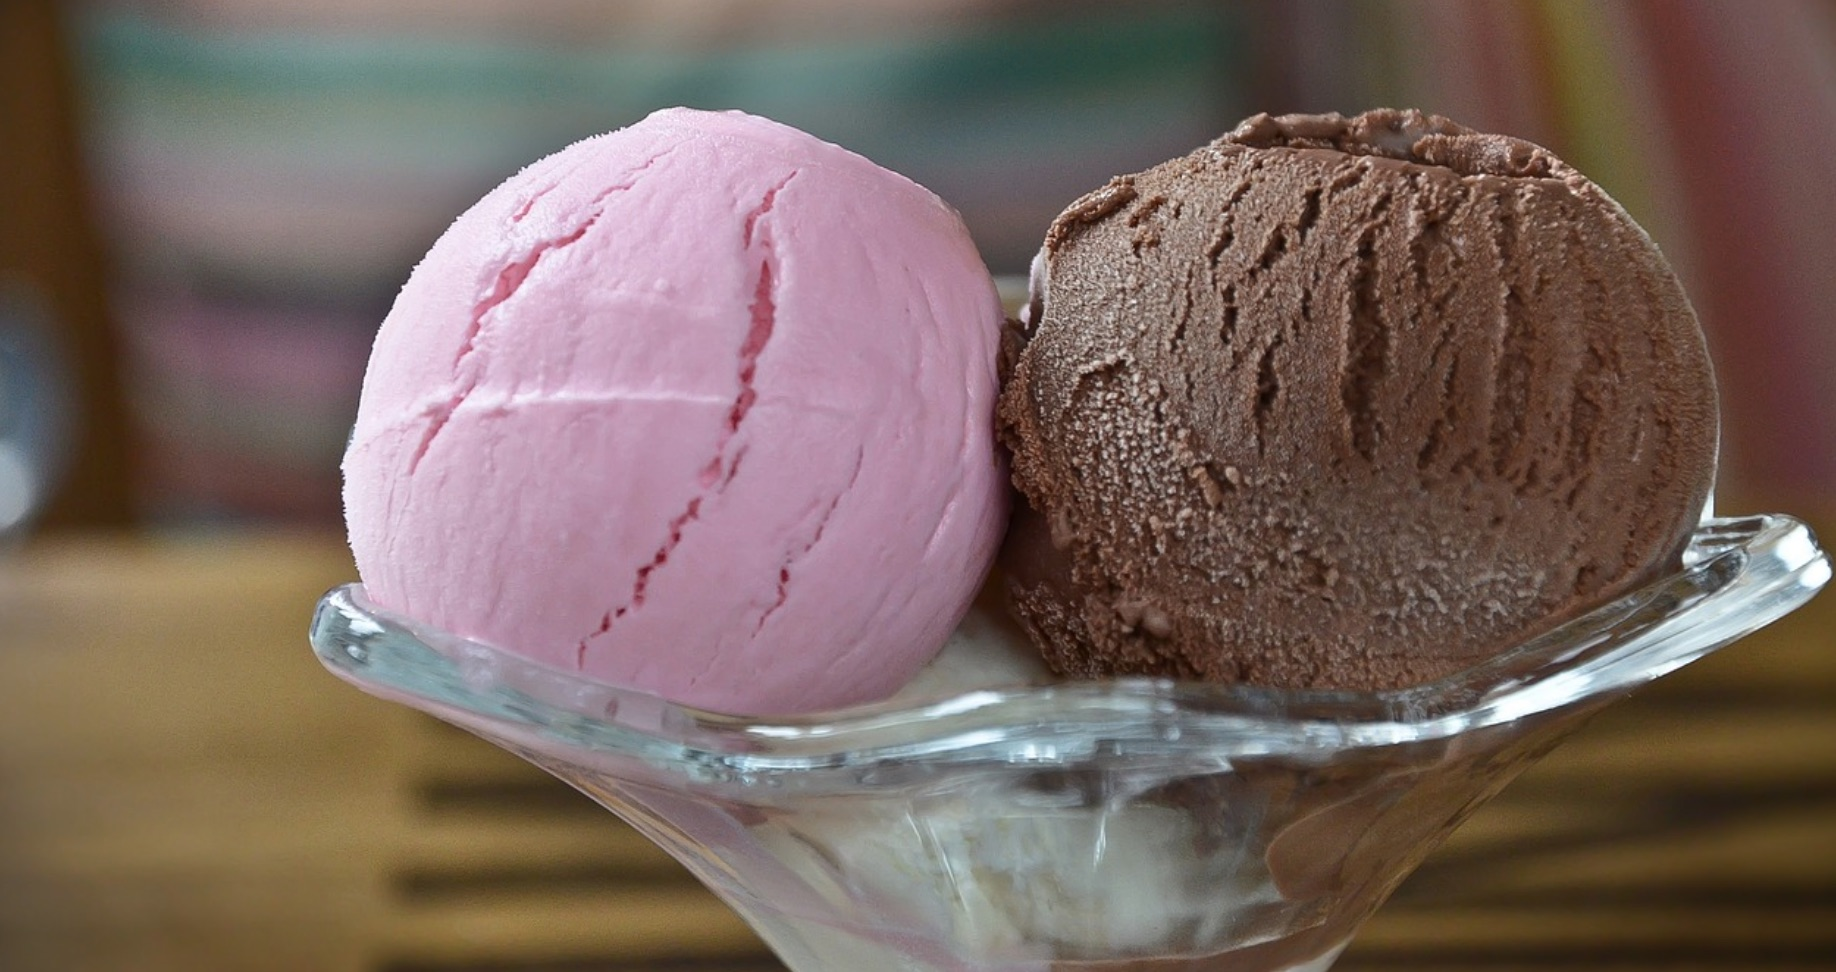 strawberry chocolate and vanilla ice cream